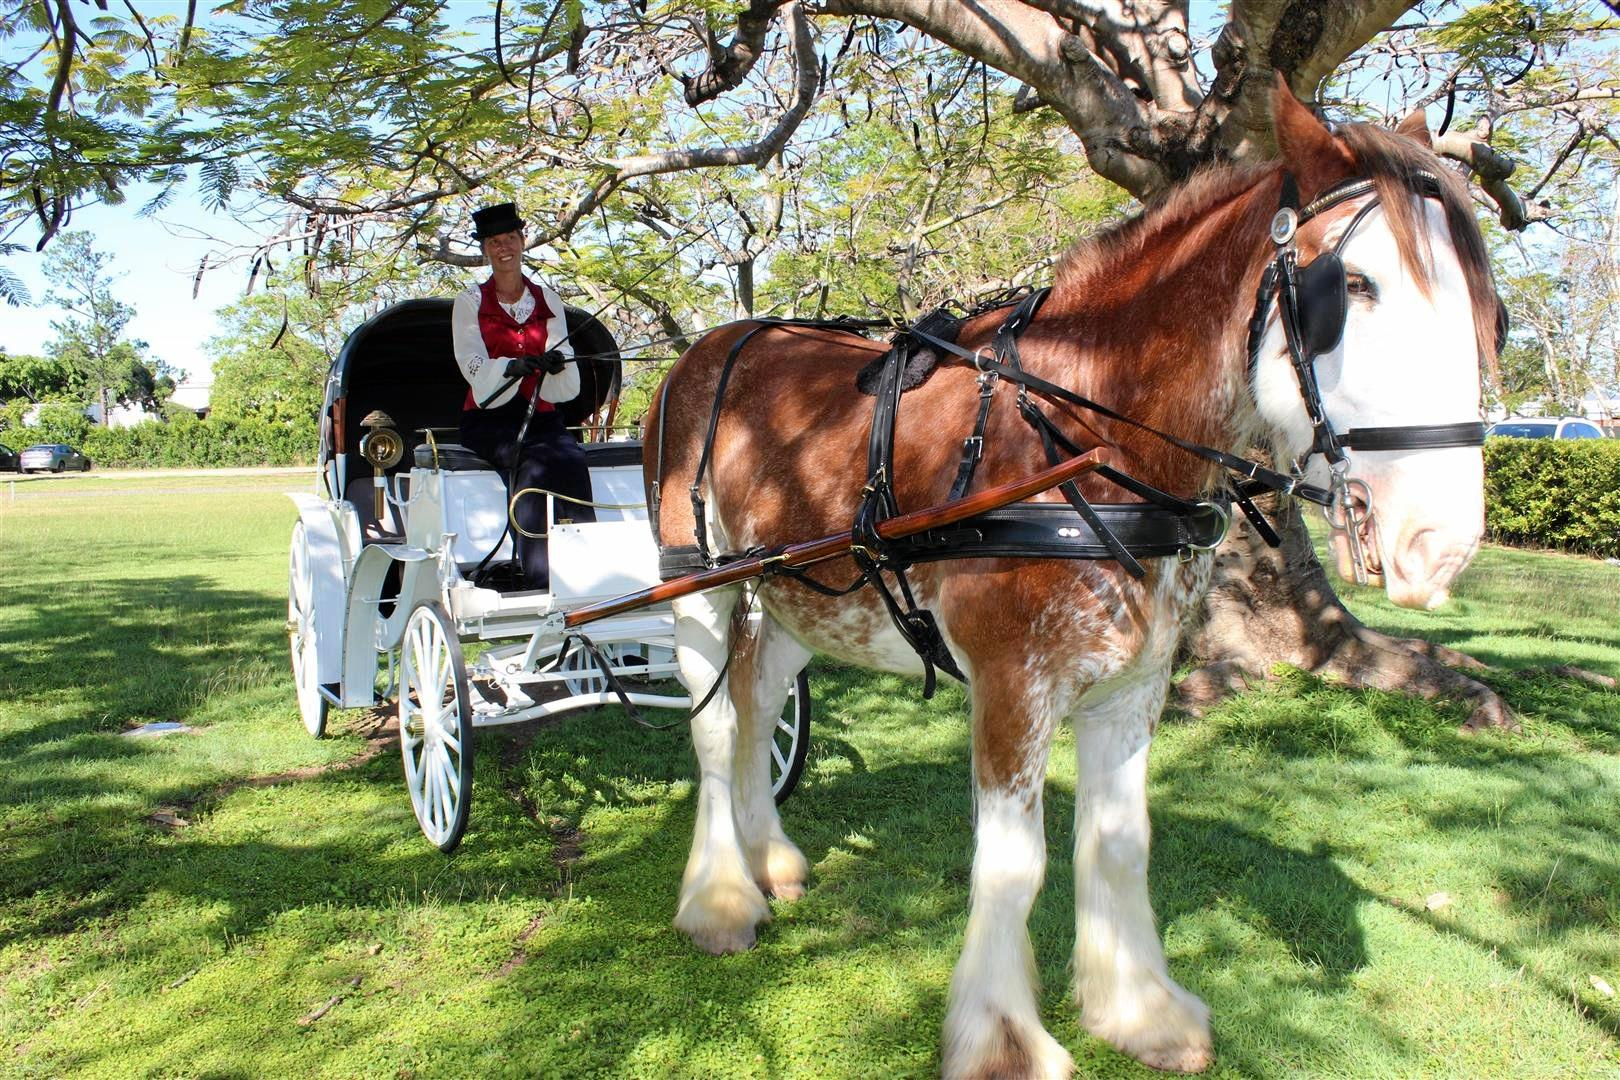 Kenny the Clydesdale will be offering horse-drawn carriage rides through Rockhampton CBD from tonight, October 7.